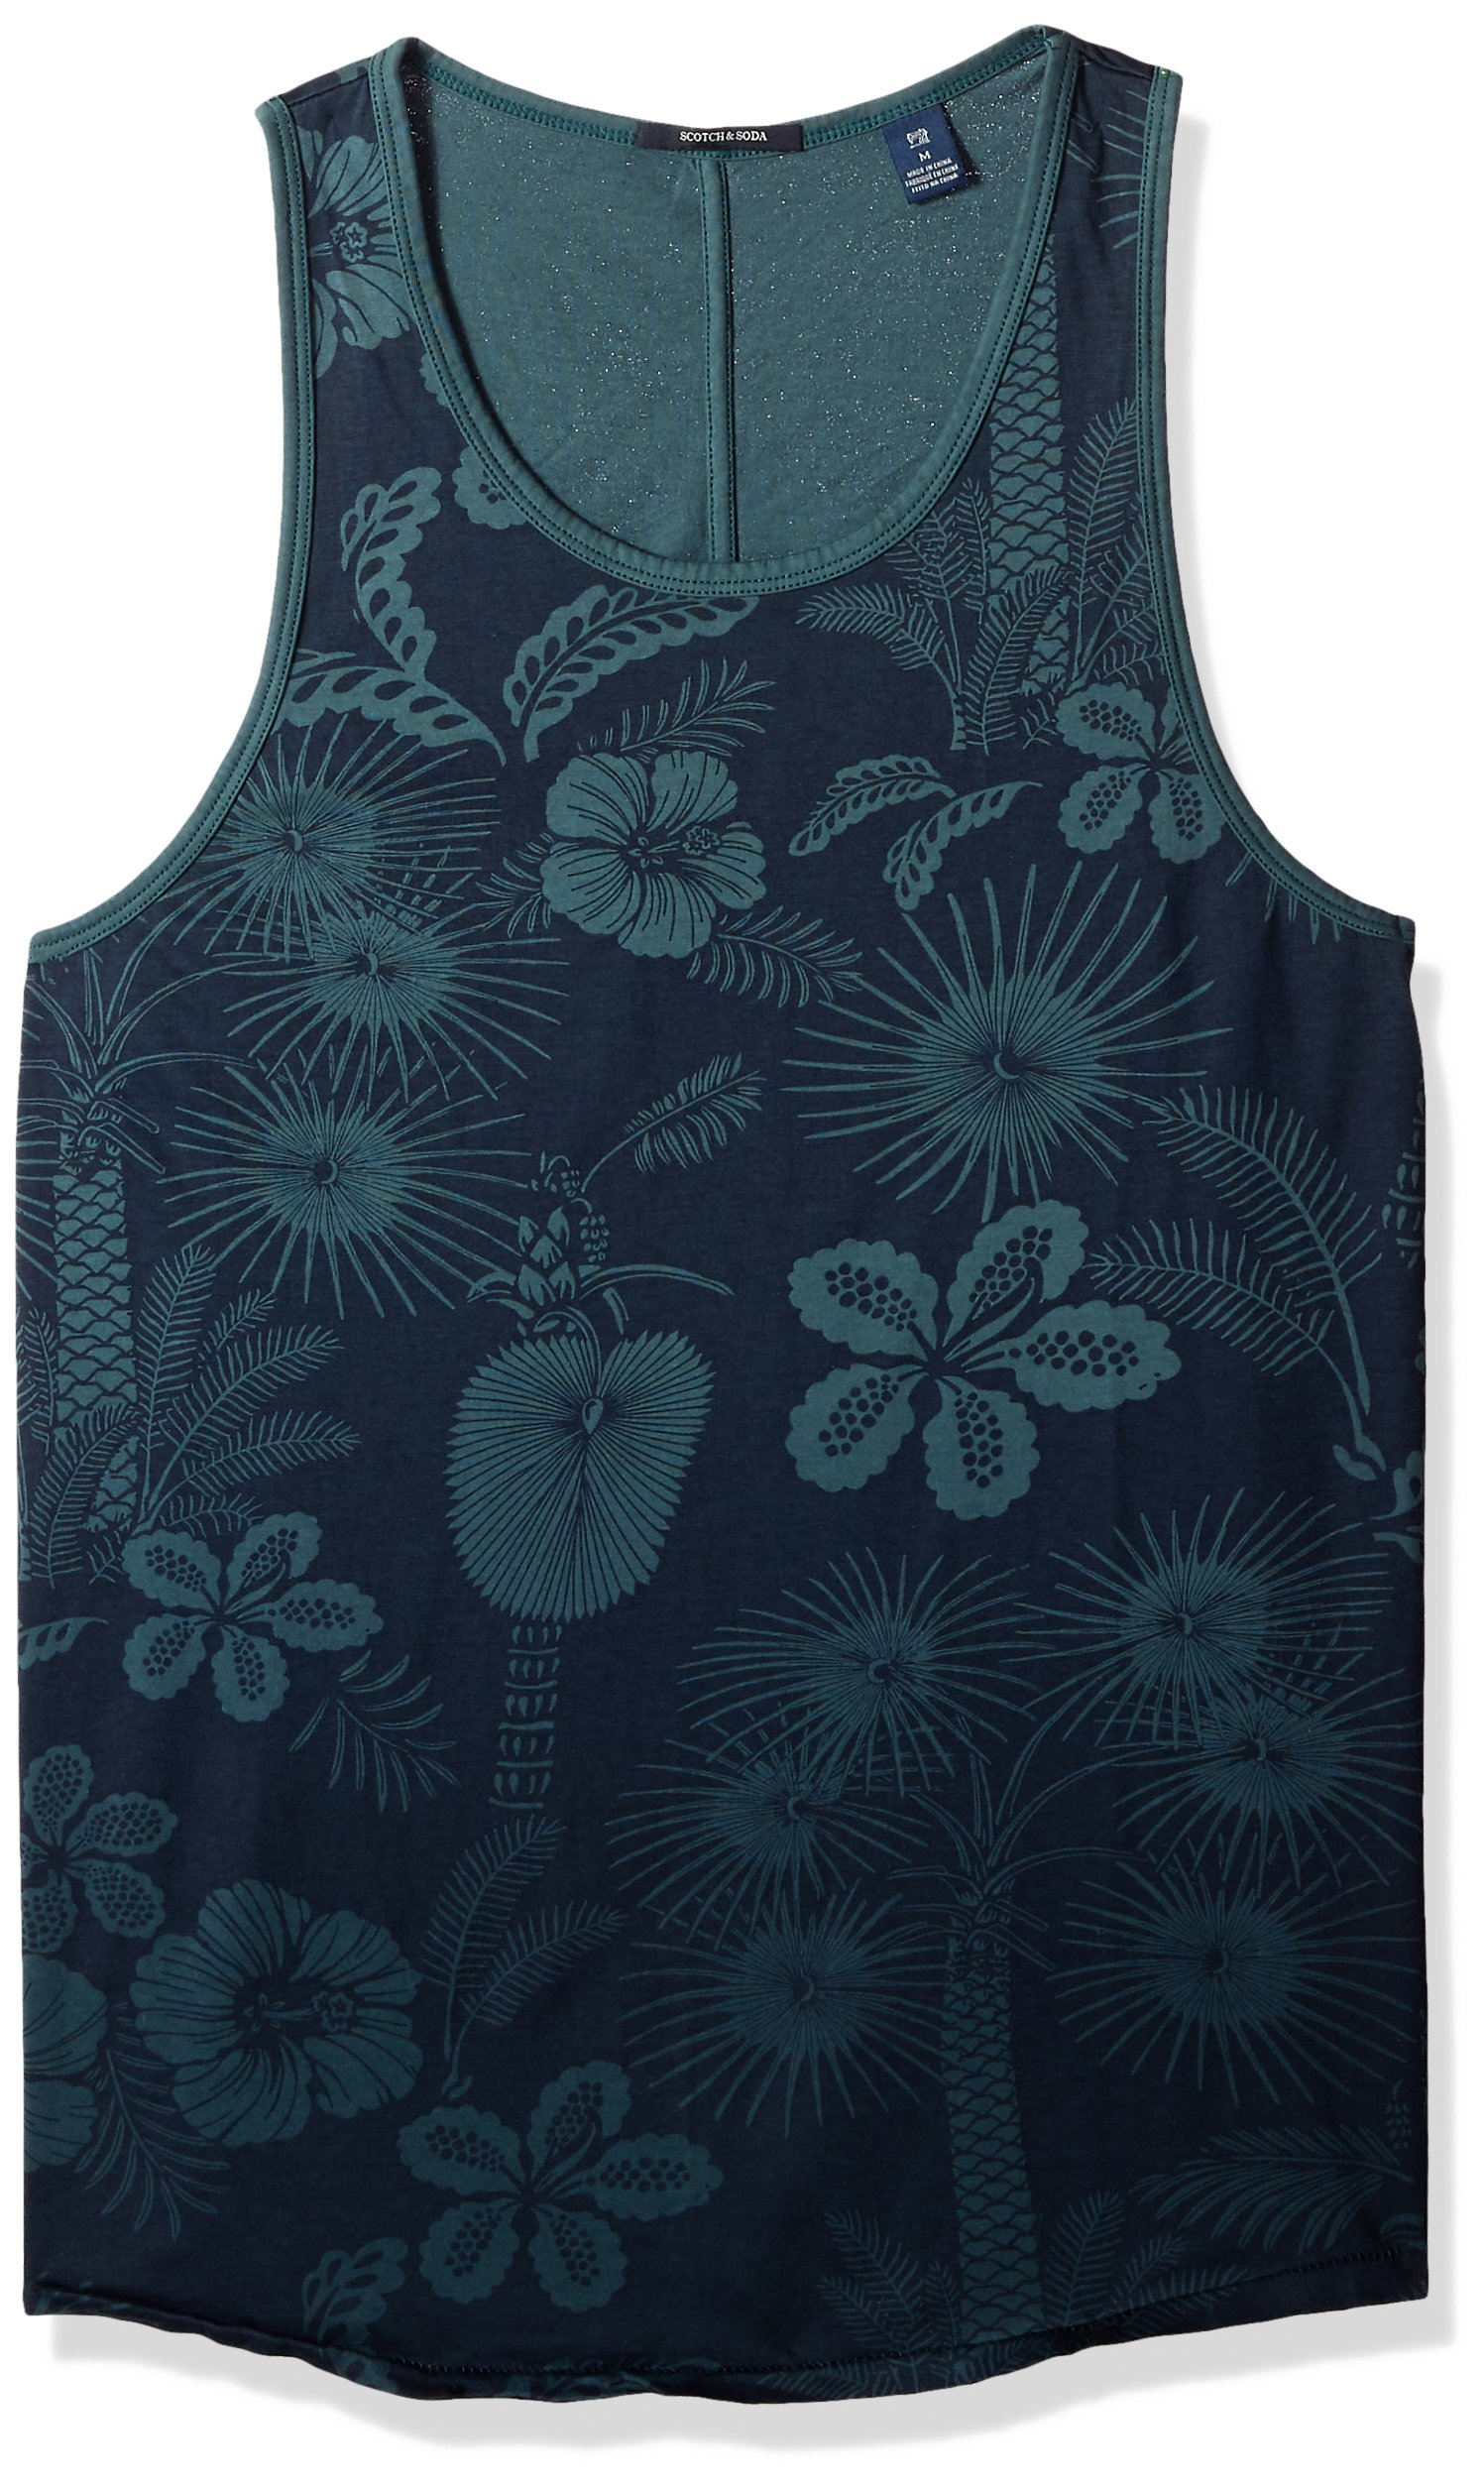 Scotch & Soda Men's Summer Singlet with Print, Combo b, M